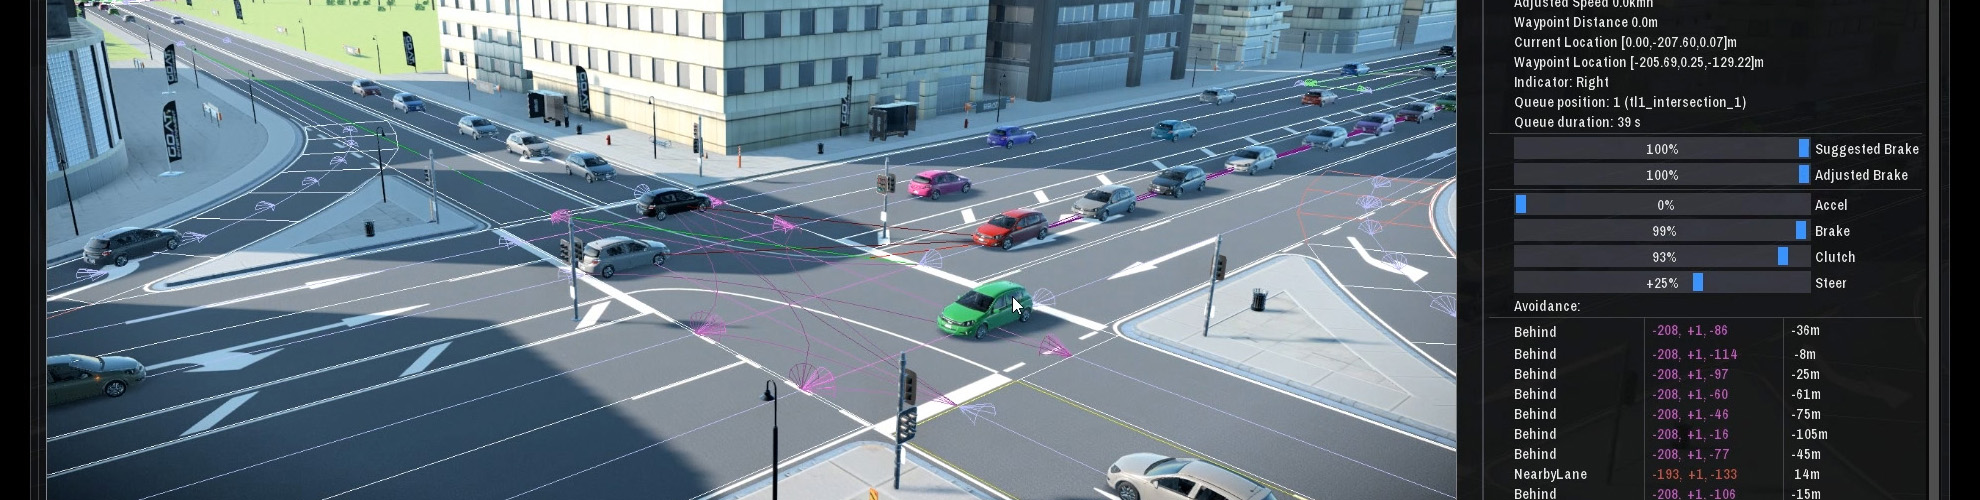 Real-Time Traffic Simulation Technology